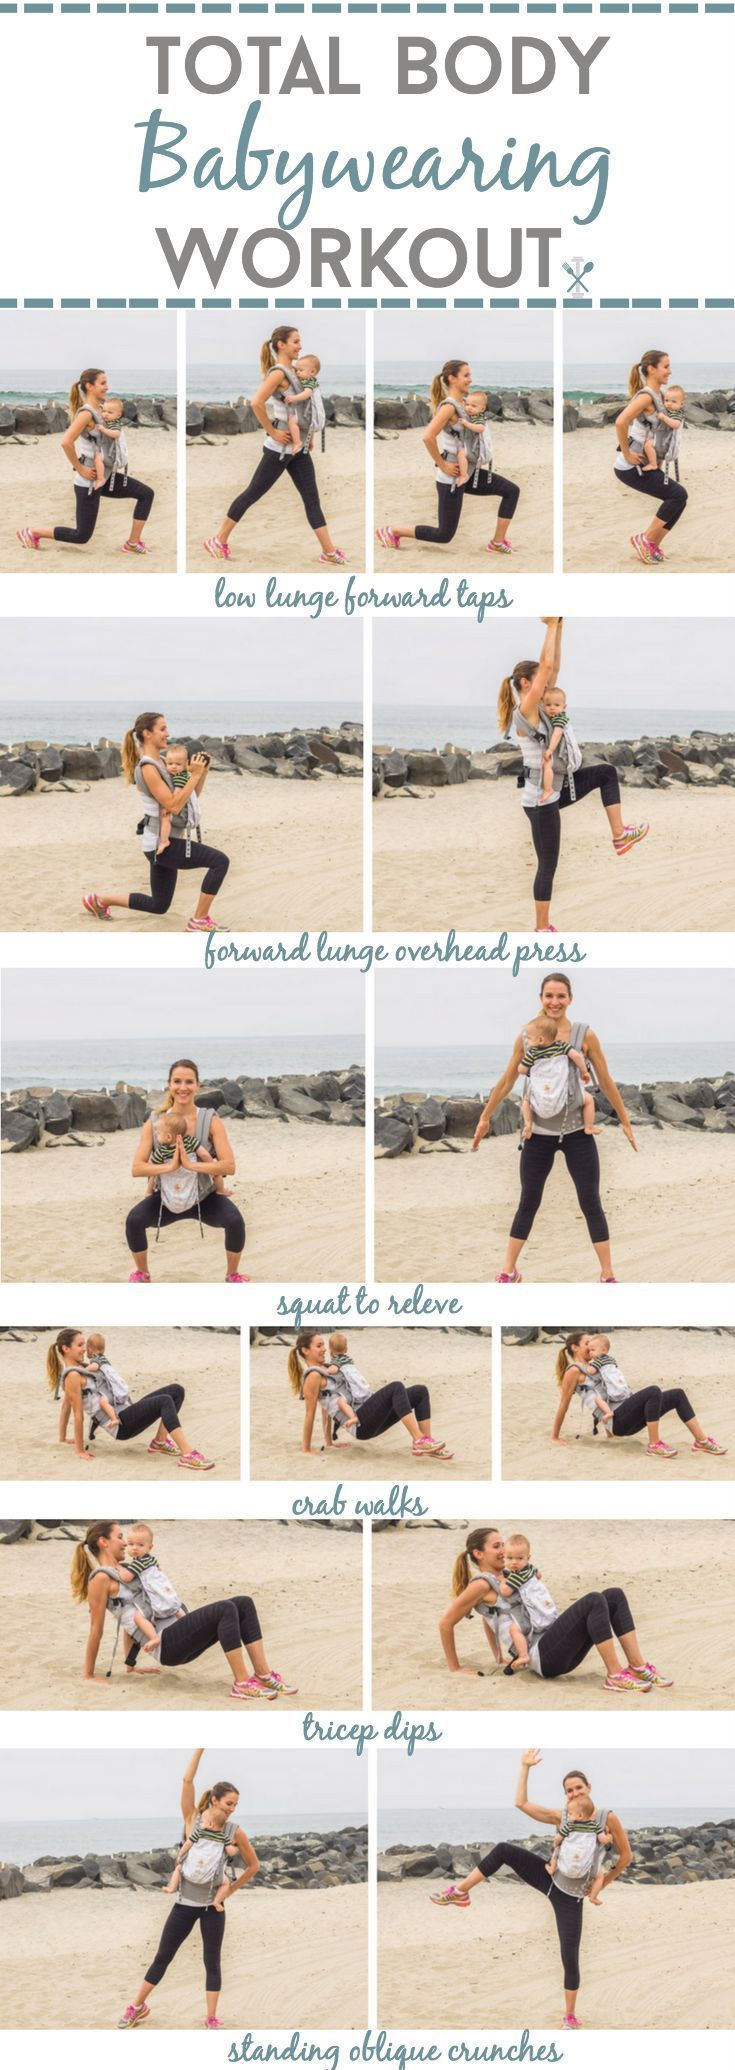 Workout with baby! This total body babywearing workout incorporates upper and lower body circuits, and standing core work! No equipment required to workout at home with kids